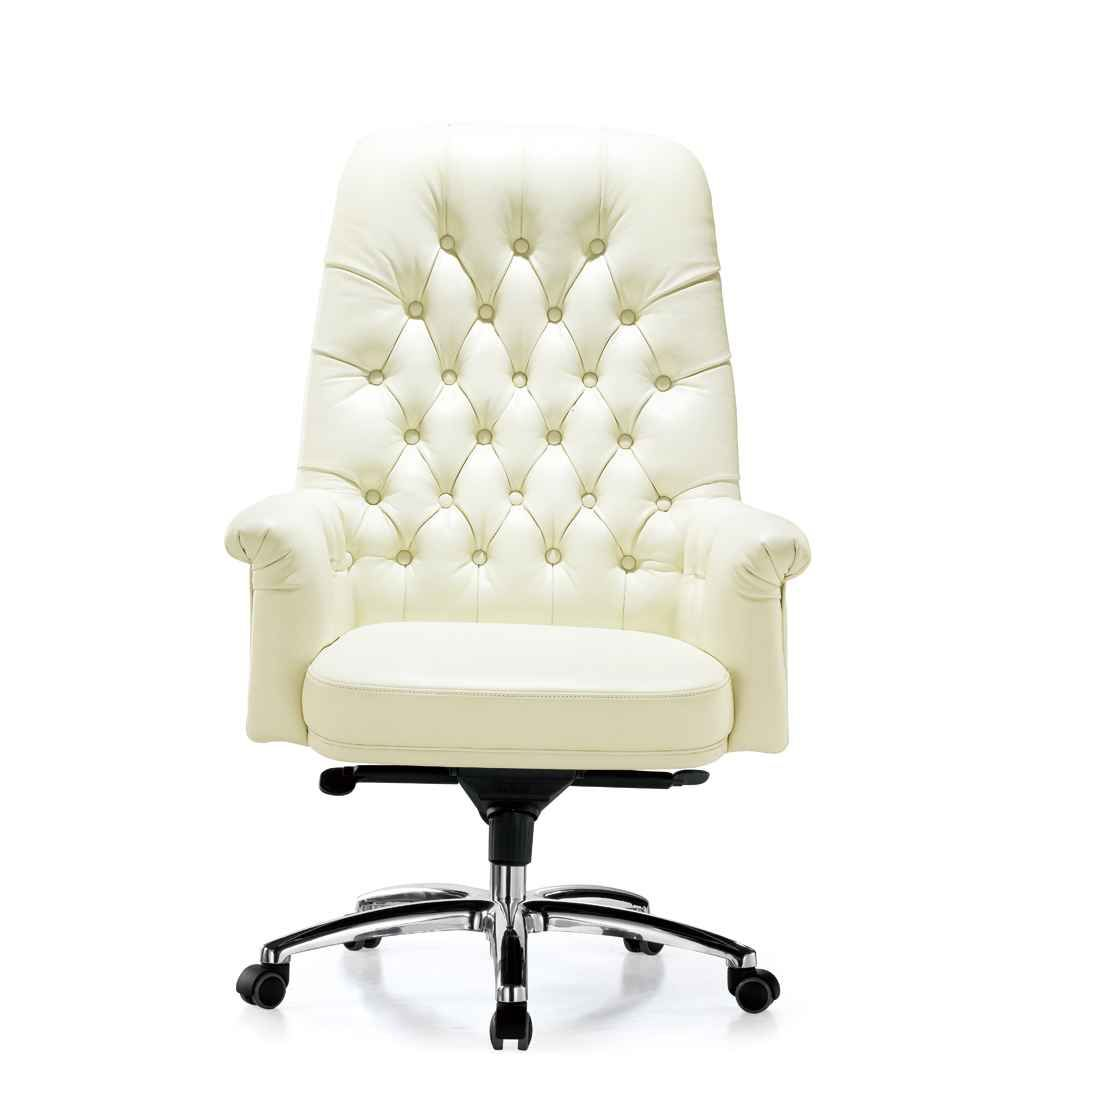 20 stylish and comfortable computer chair designs white for Chair design leather